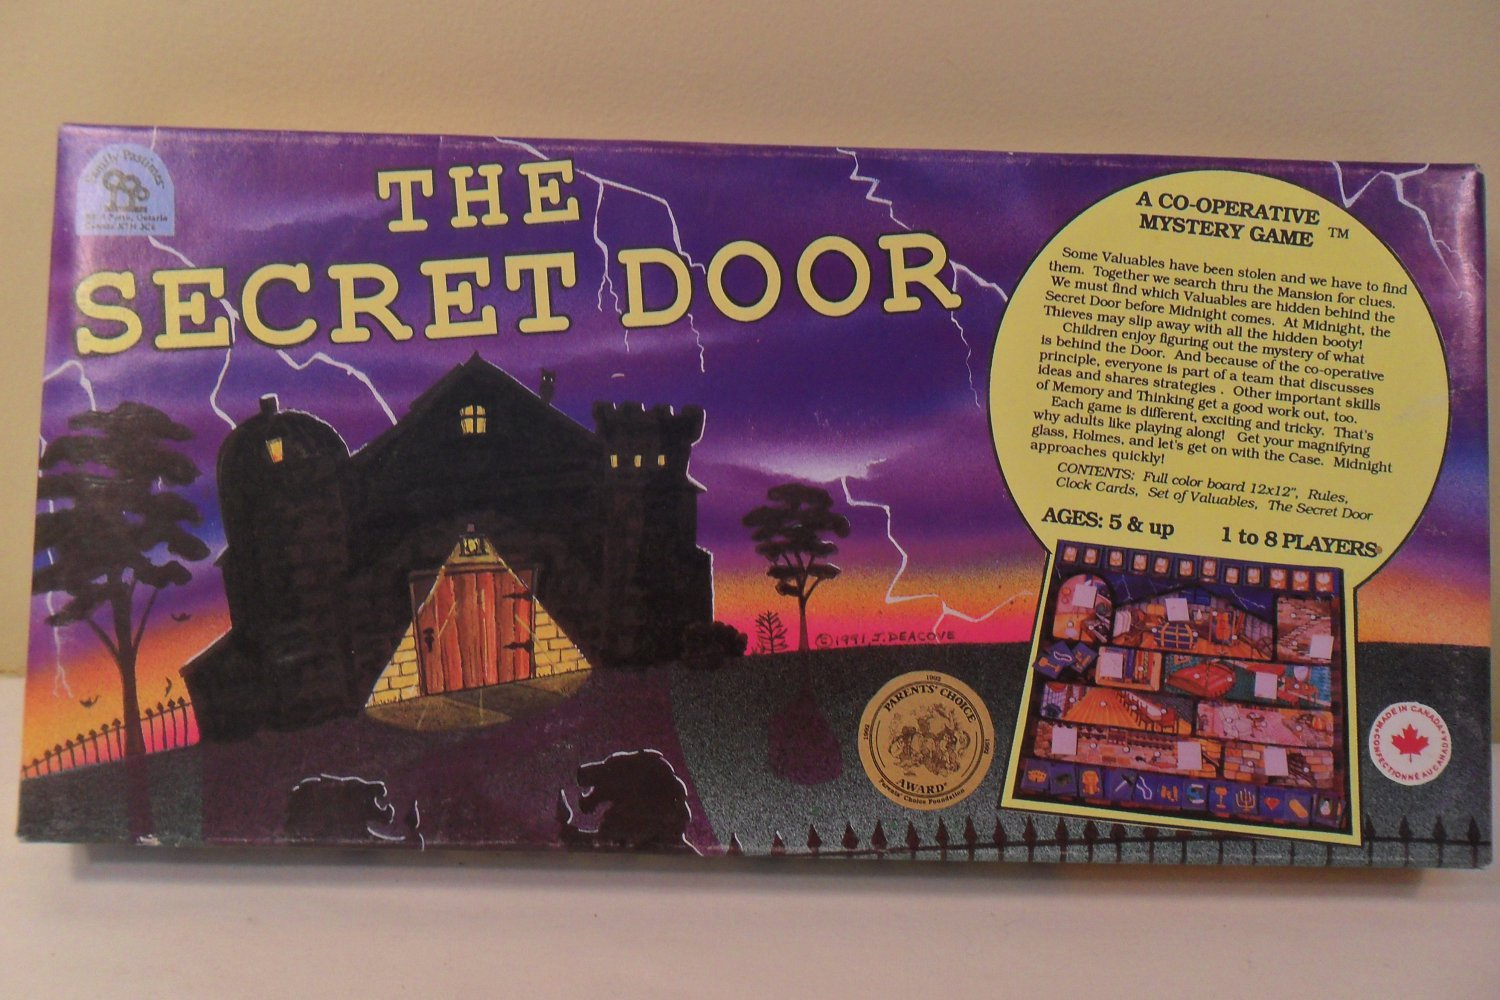 1991 The Secret Door Co-Operative Mystery Game Family Pastimes COMPLETE